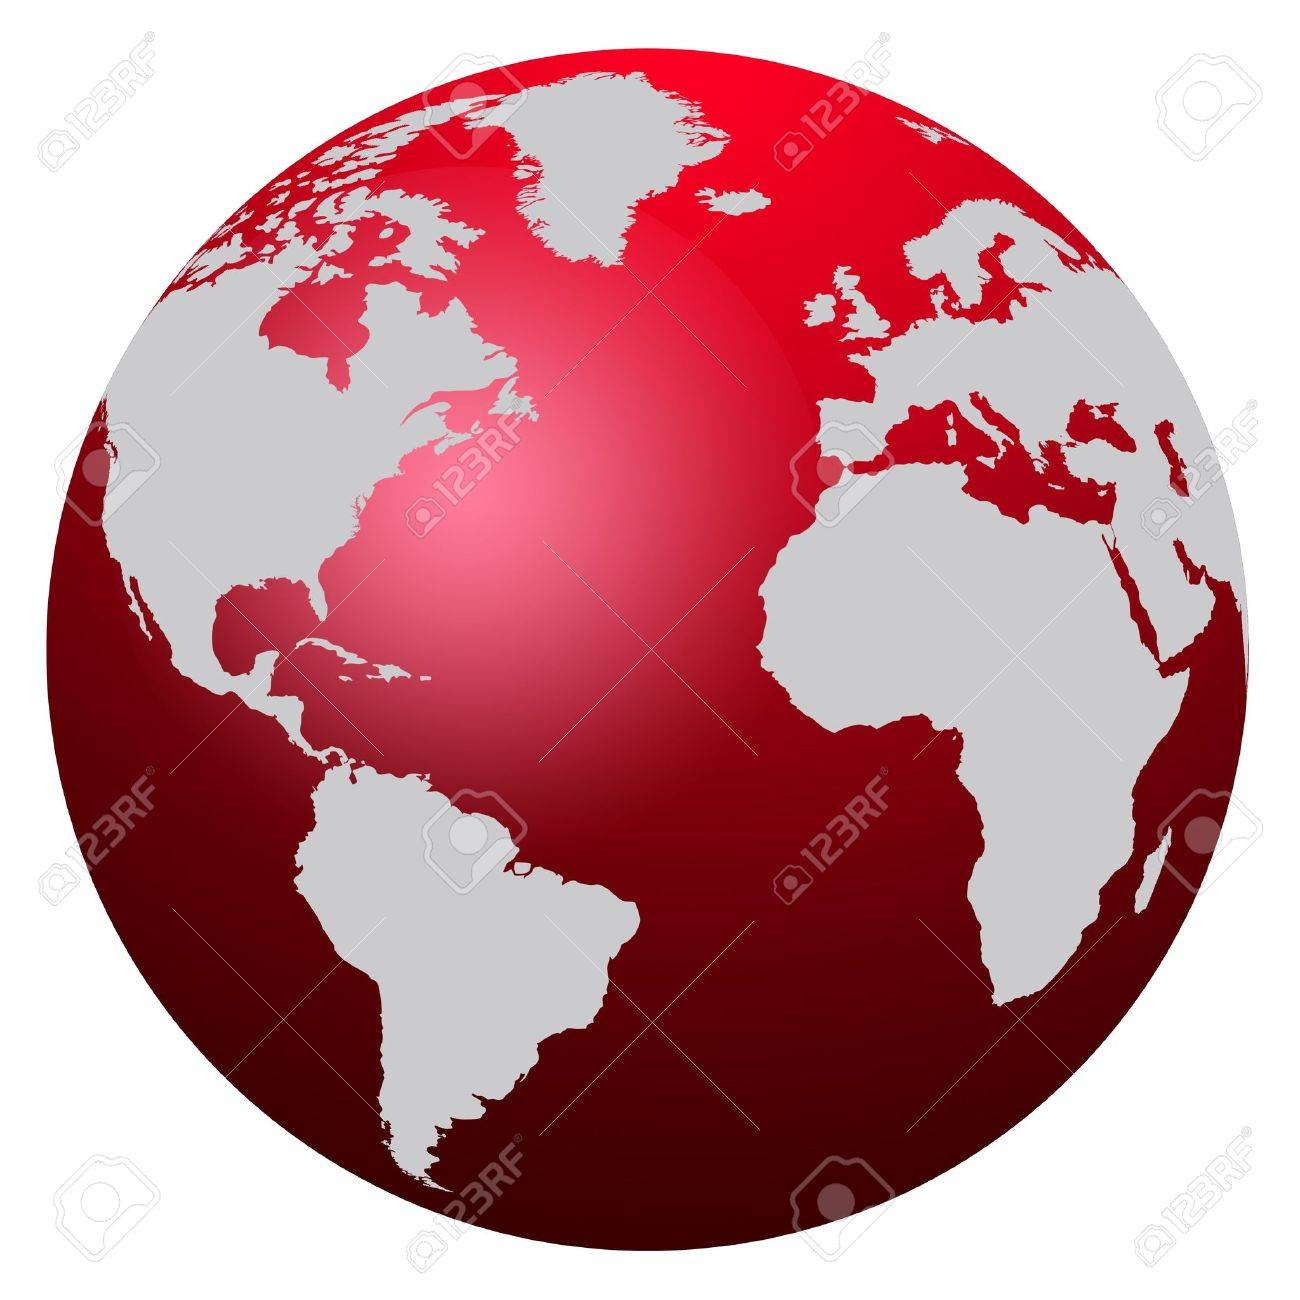 World map red globe america europe and africa stock photo world map red globe america europe and africa stock photo 2554416 gumiabroncs Choice Image